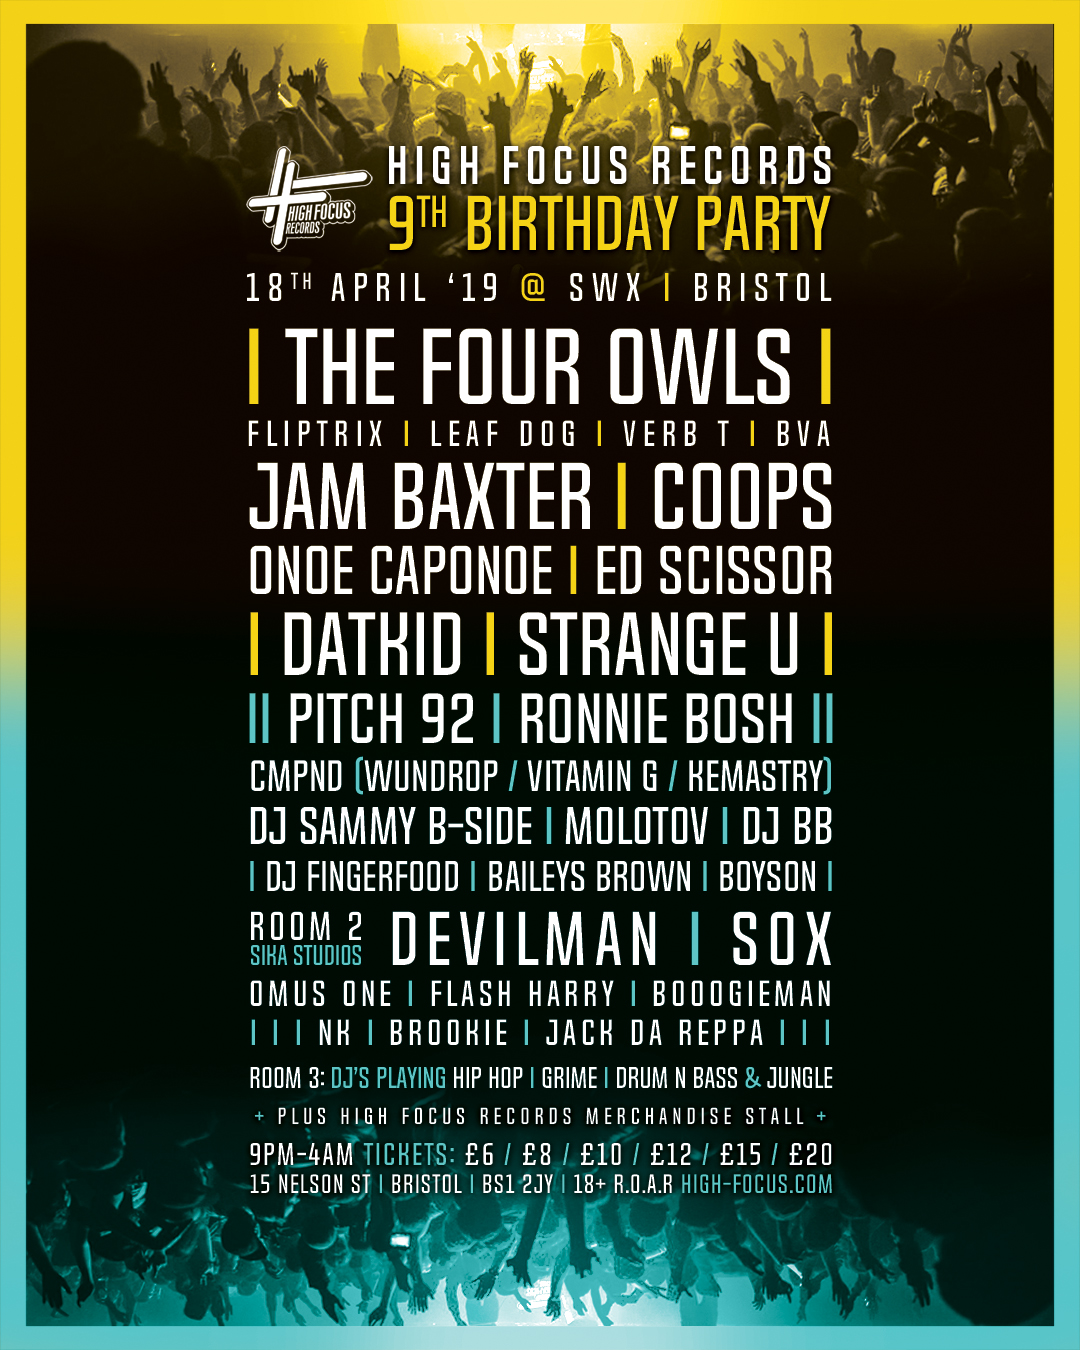 High Focus Records 9th Birthday Party Line Up Announced Official